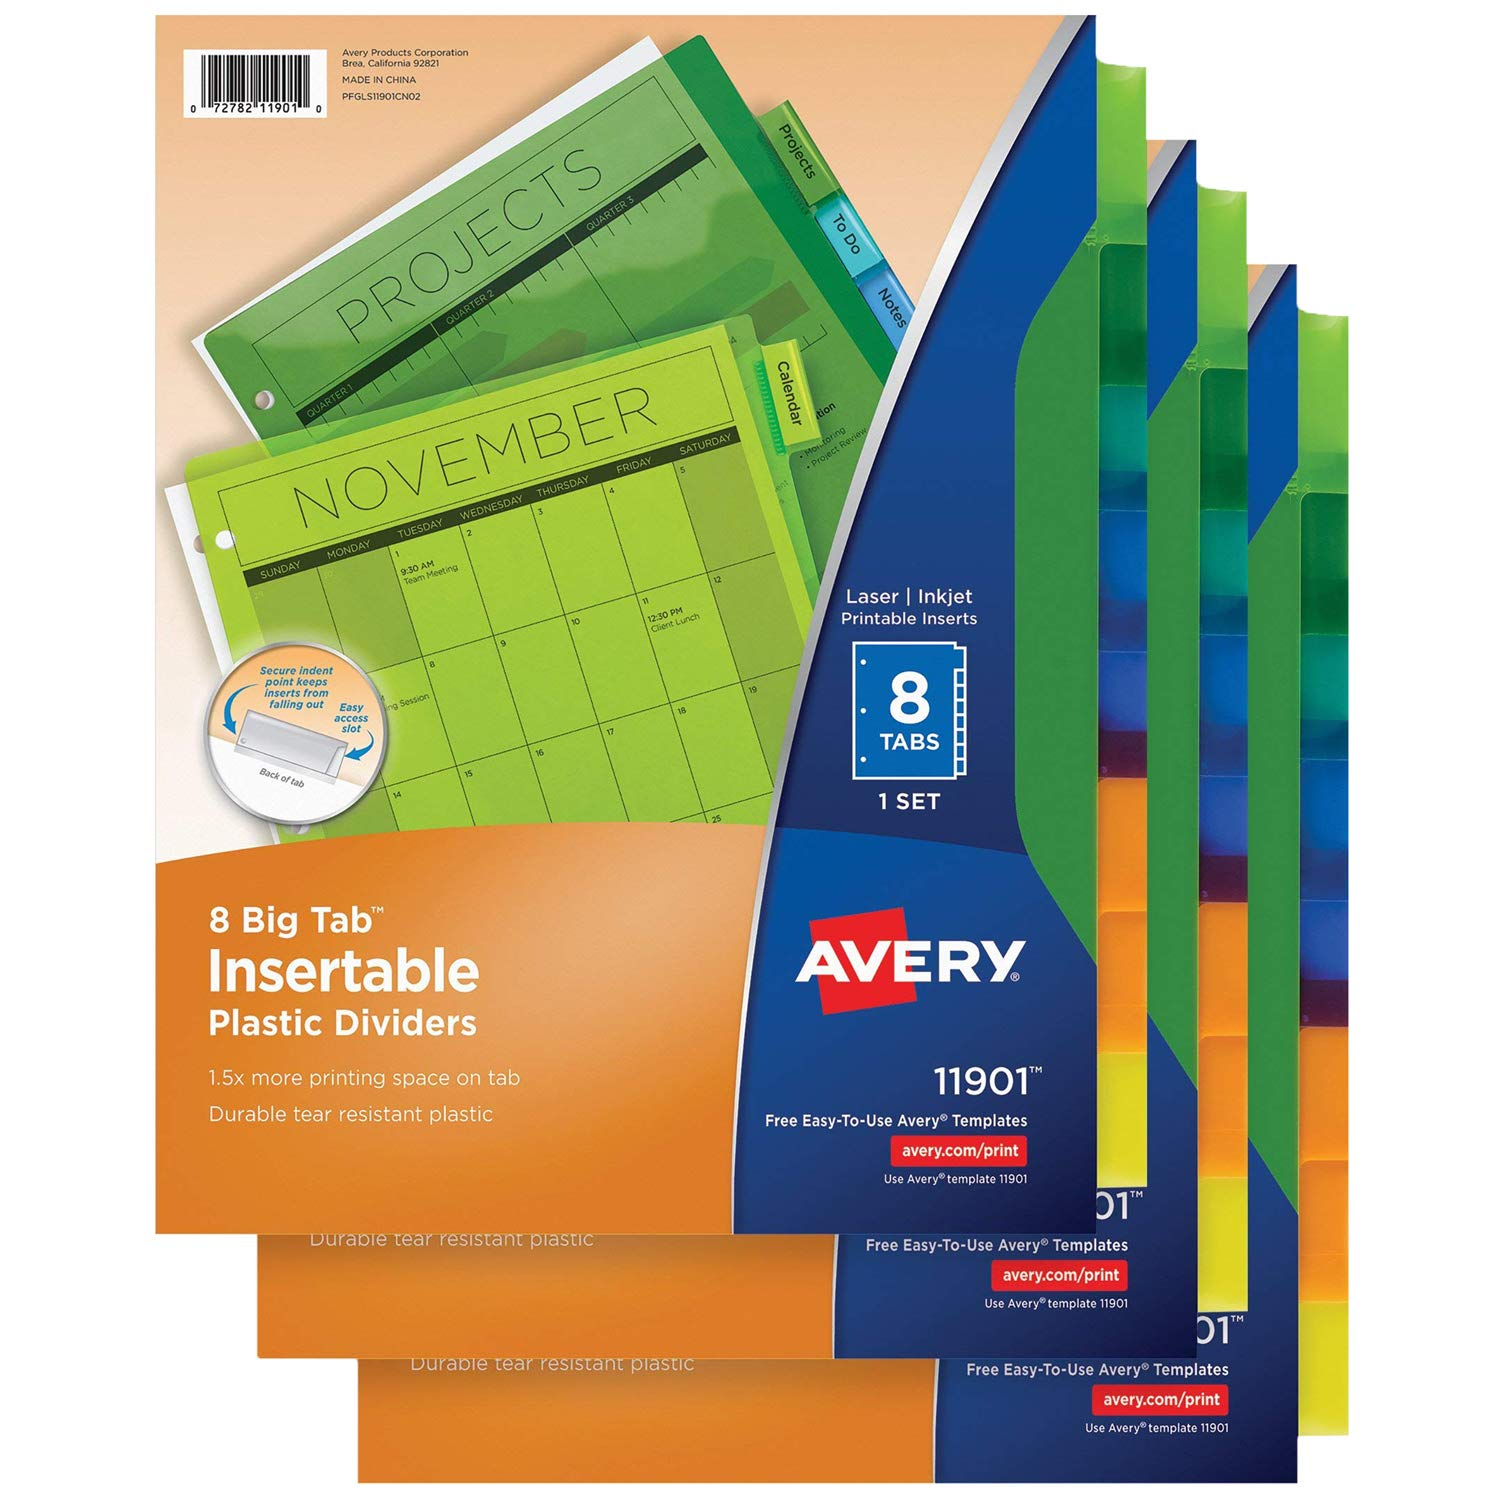 Avery Big Tab Insertable Plastic Dividers, 8-Tabs, 3 pk (71901) Avery Products Corporation